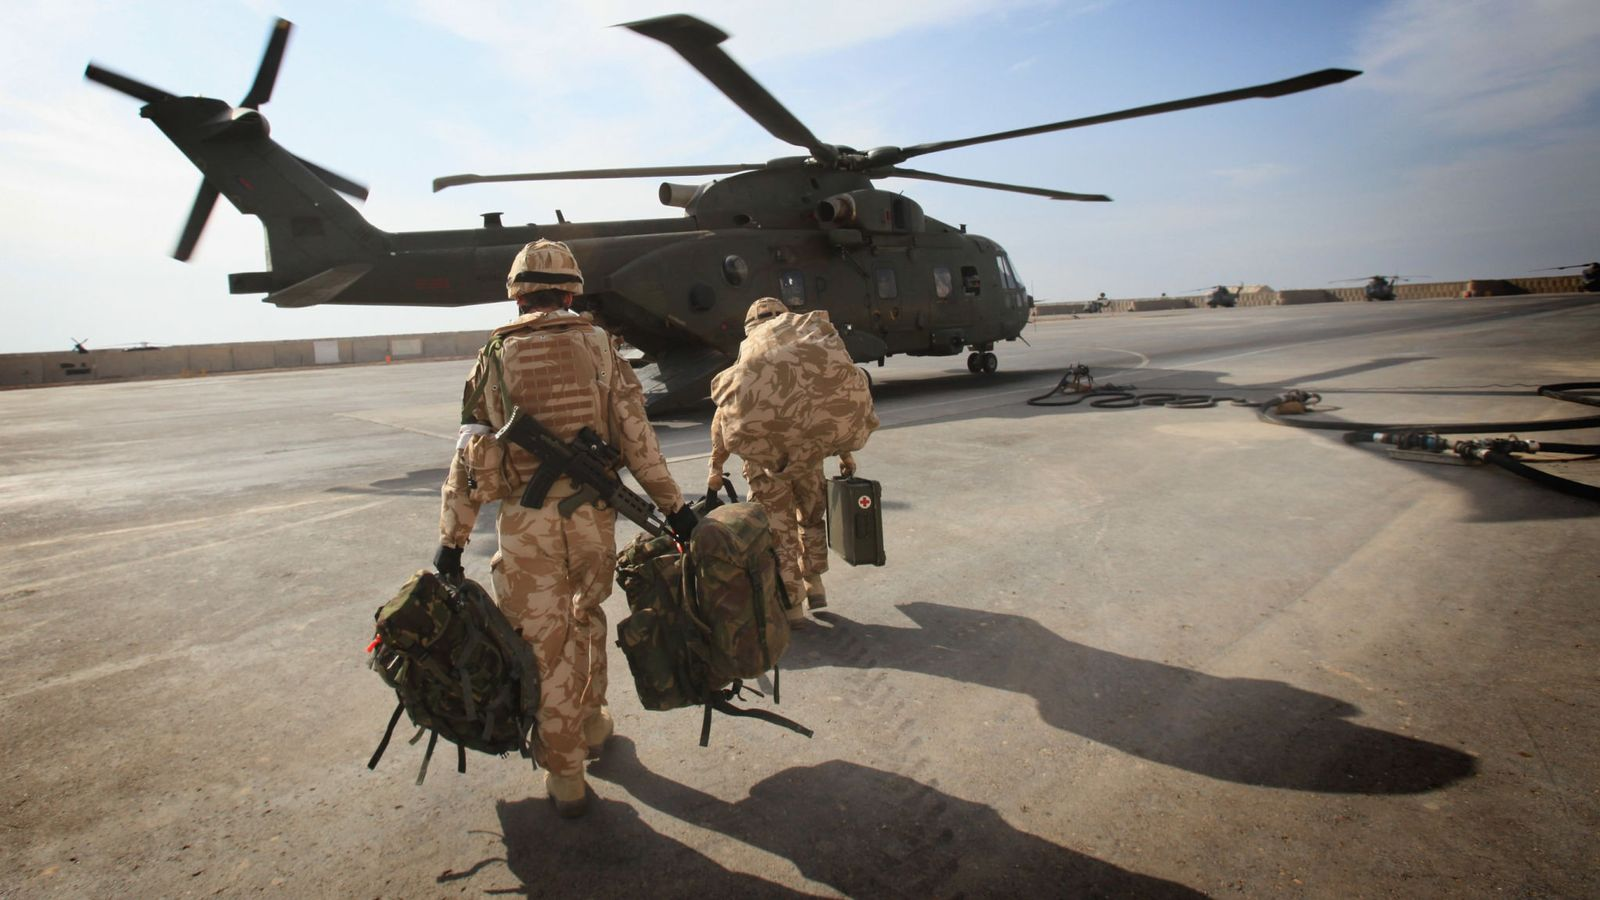 UK raises threat level for personnel in Iraq due to 'heightened risk from Iran'